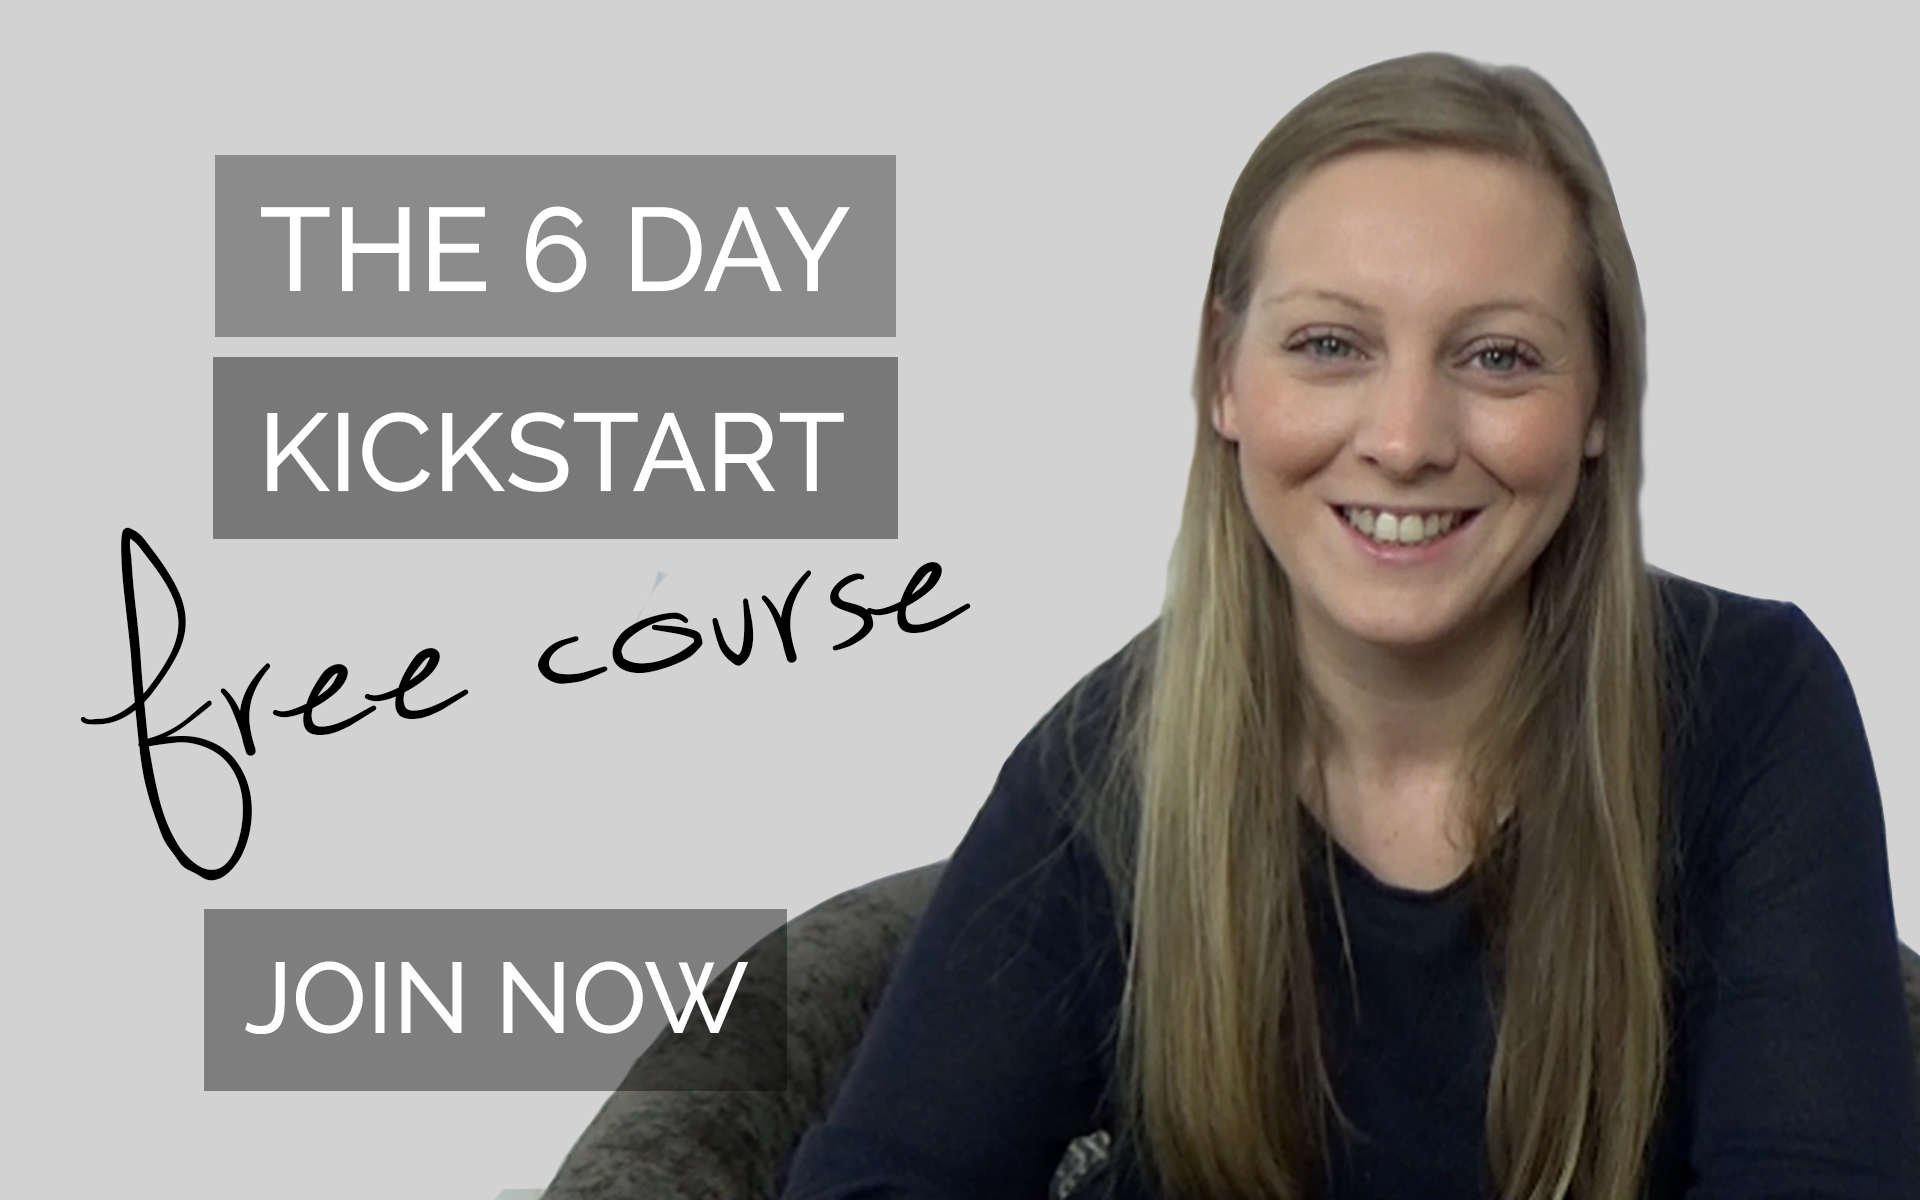 Free online coaching course: how to change your life